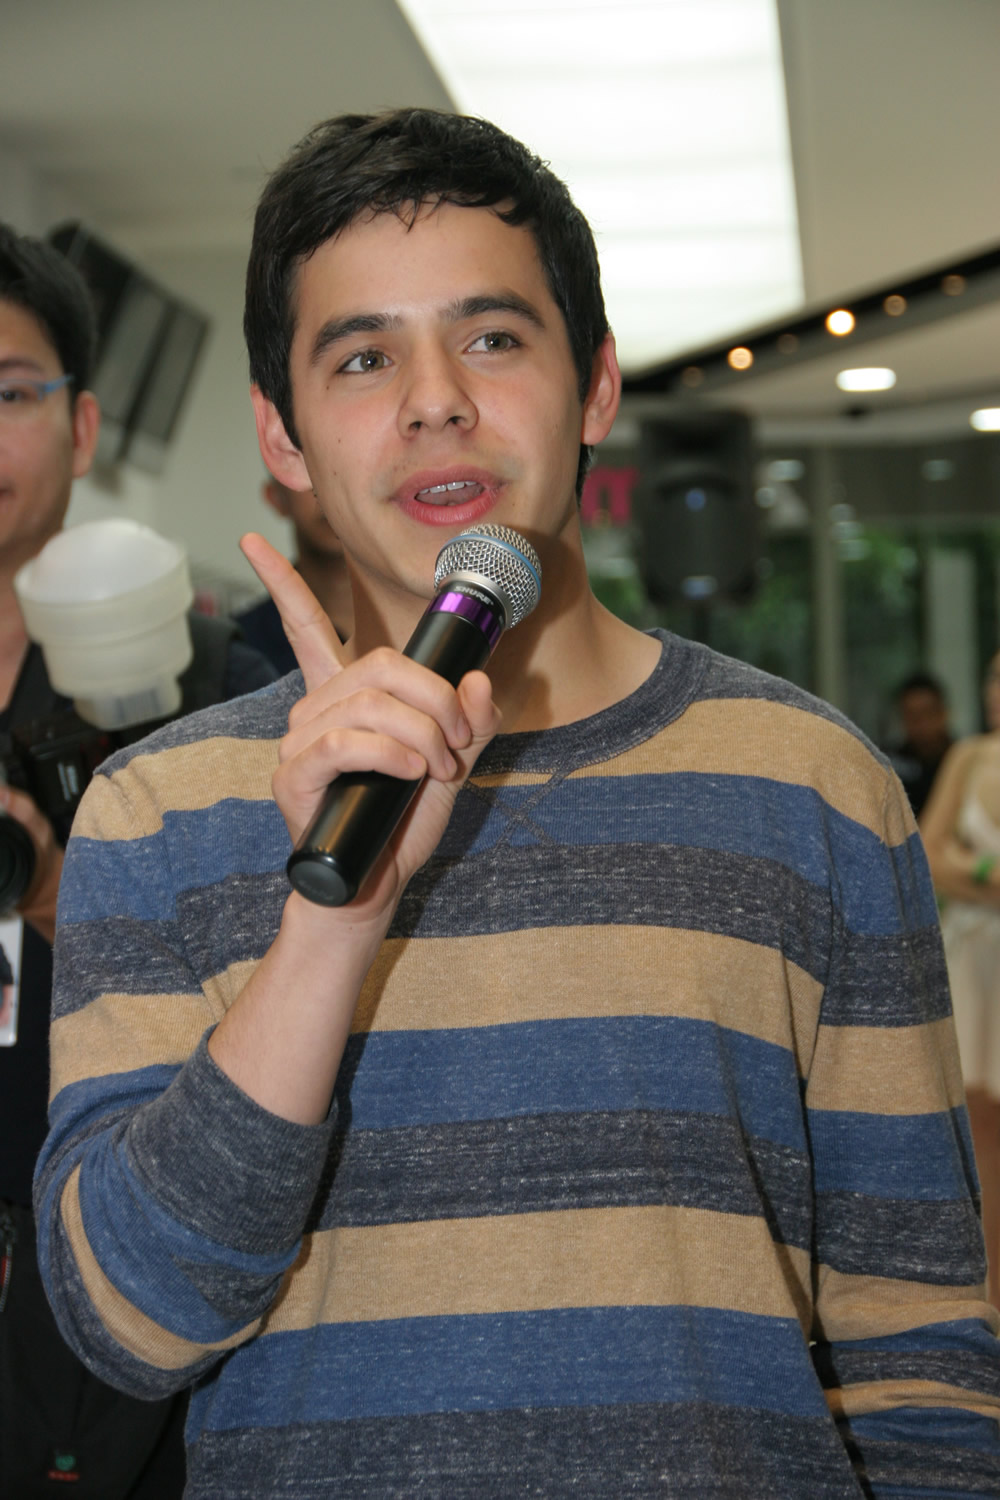 Sorry, david archuleta i want to fuck are not